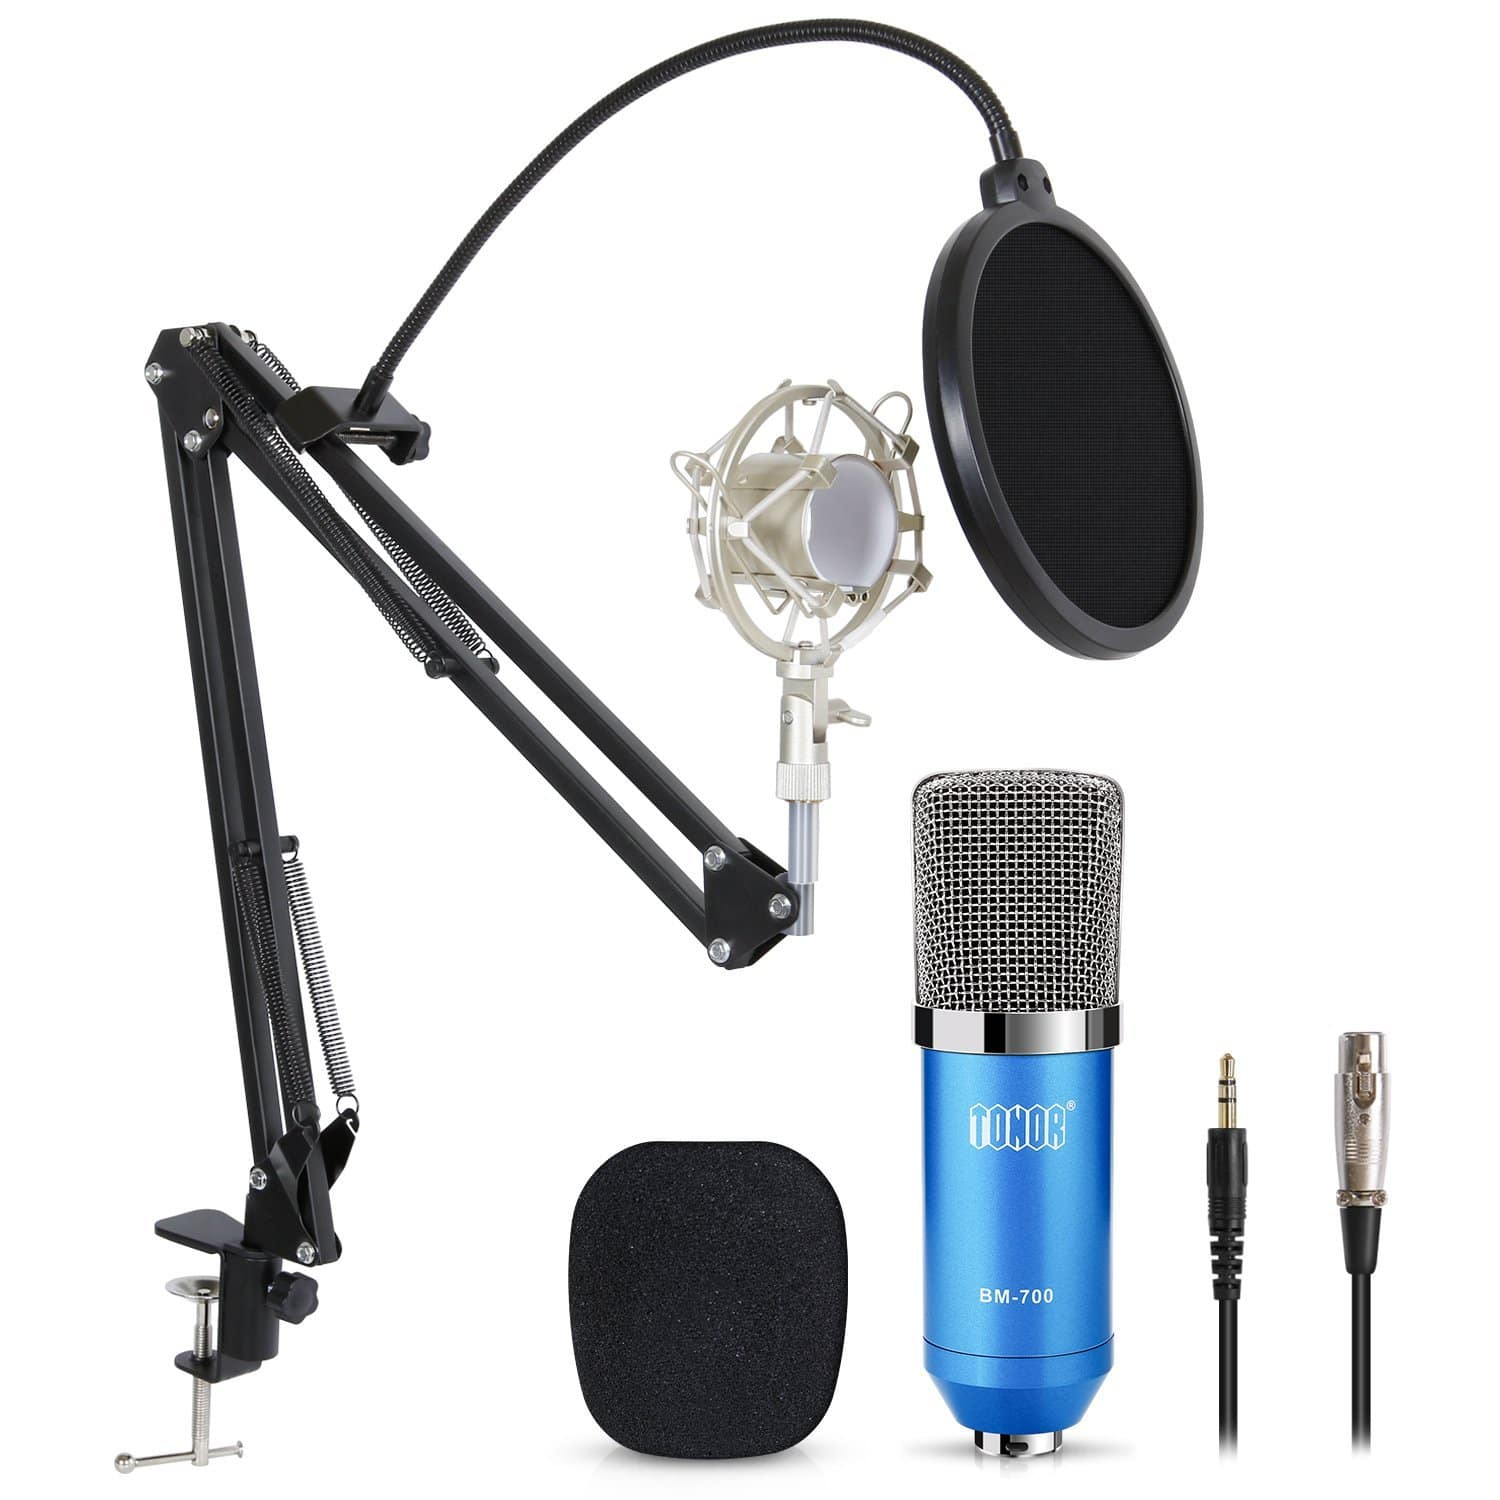 Pro Condenser PC Microphone Kit w/ 3.5mm XLR Mic + Filter & Scissor Arm (Free Prime Shipping) $25.59